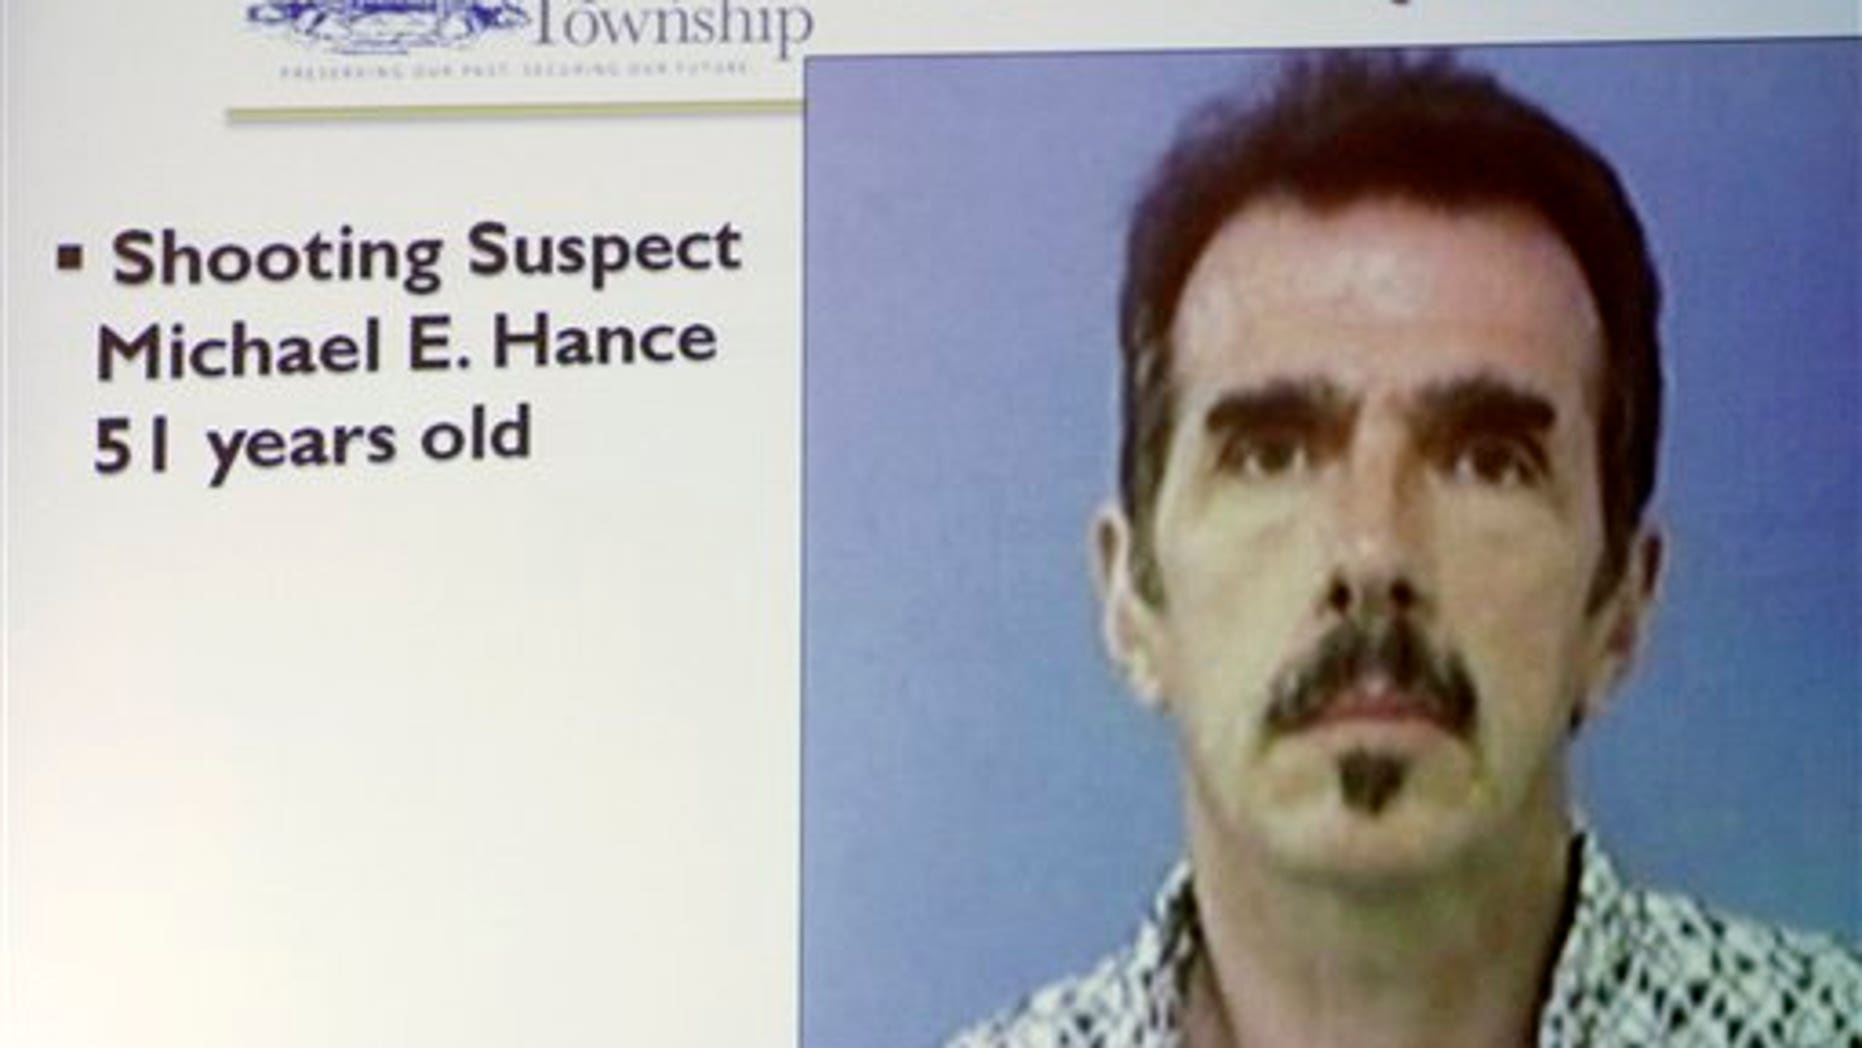 August 8: Projected image of Michael E. Hance shown at a police news conference in Copley, Ohio.